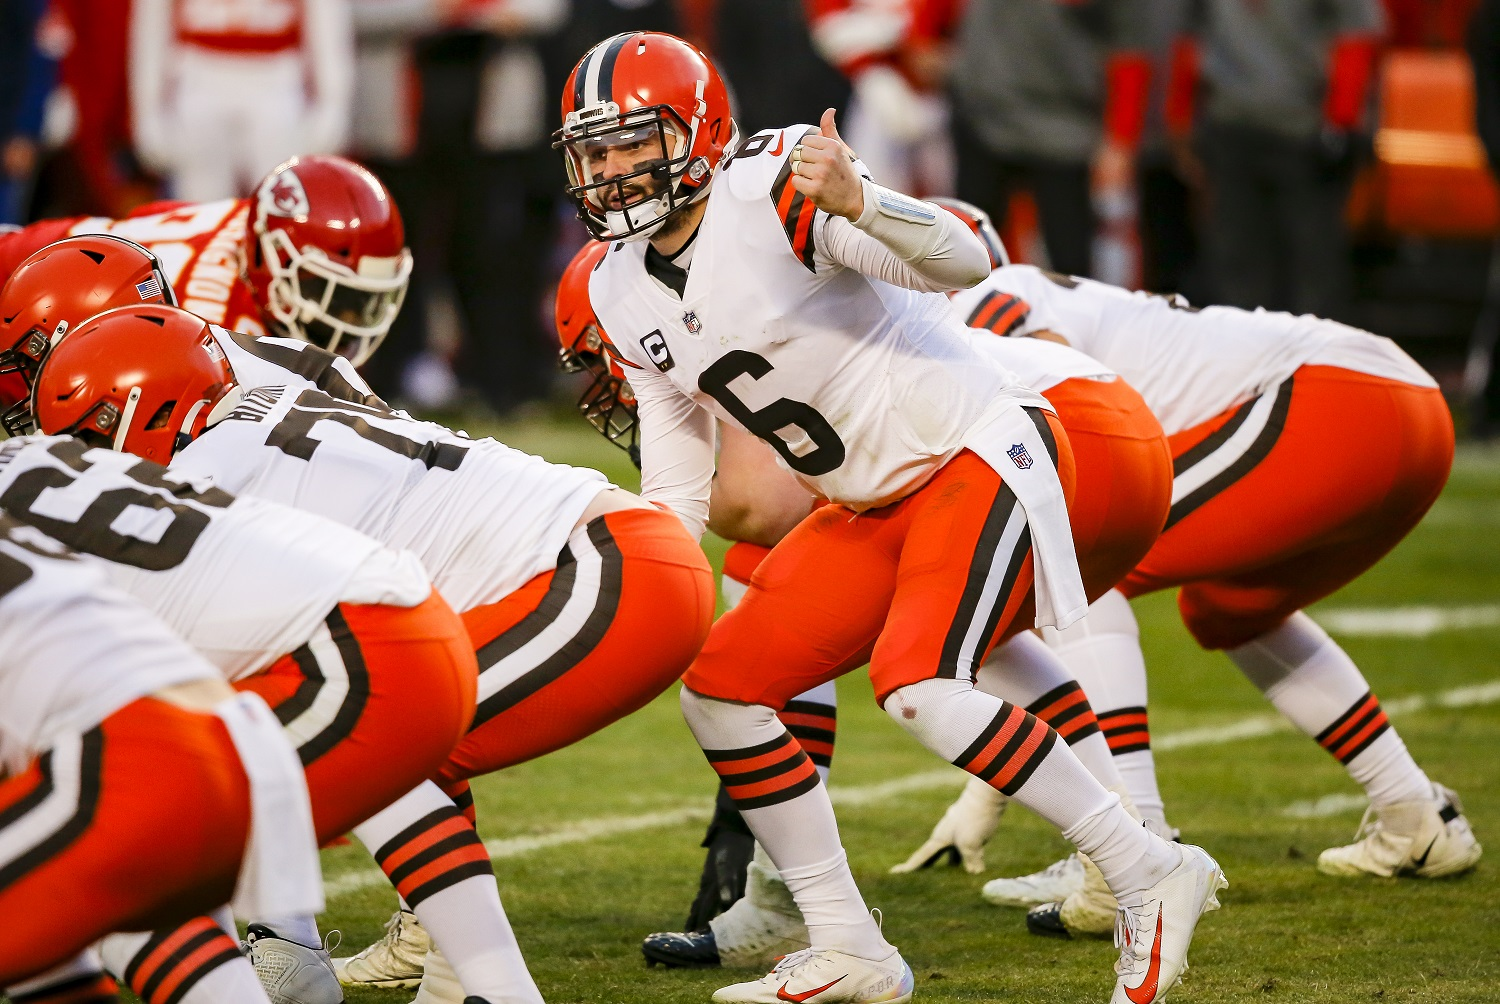 Quarterback Baker Mayfield, the No. 1 selection in the 2018 NFL draft, showed significant improvement in his third NFL season while leading the Cleveland Browns to a playoff berth. David Eulitt/Getty Images